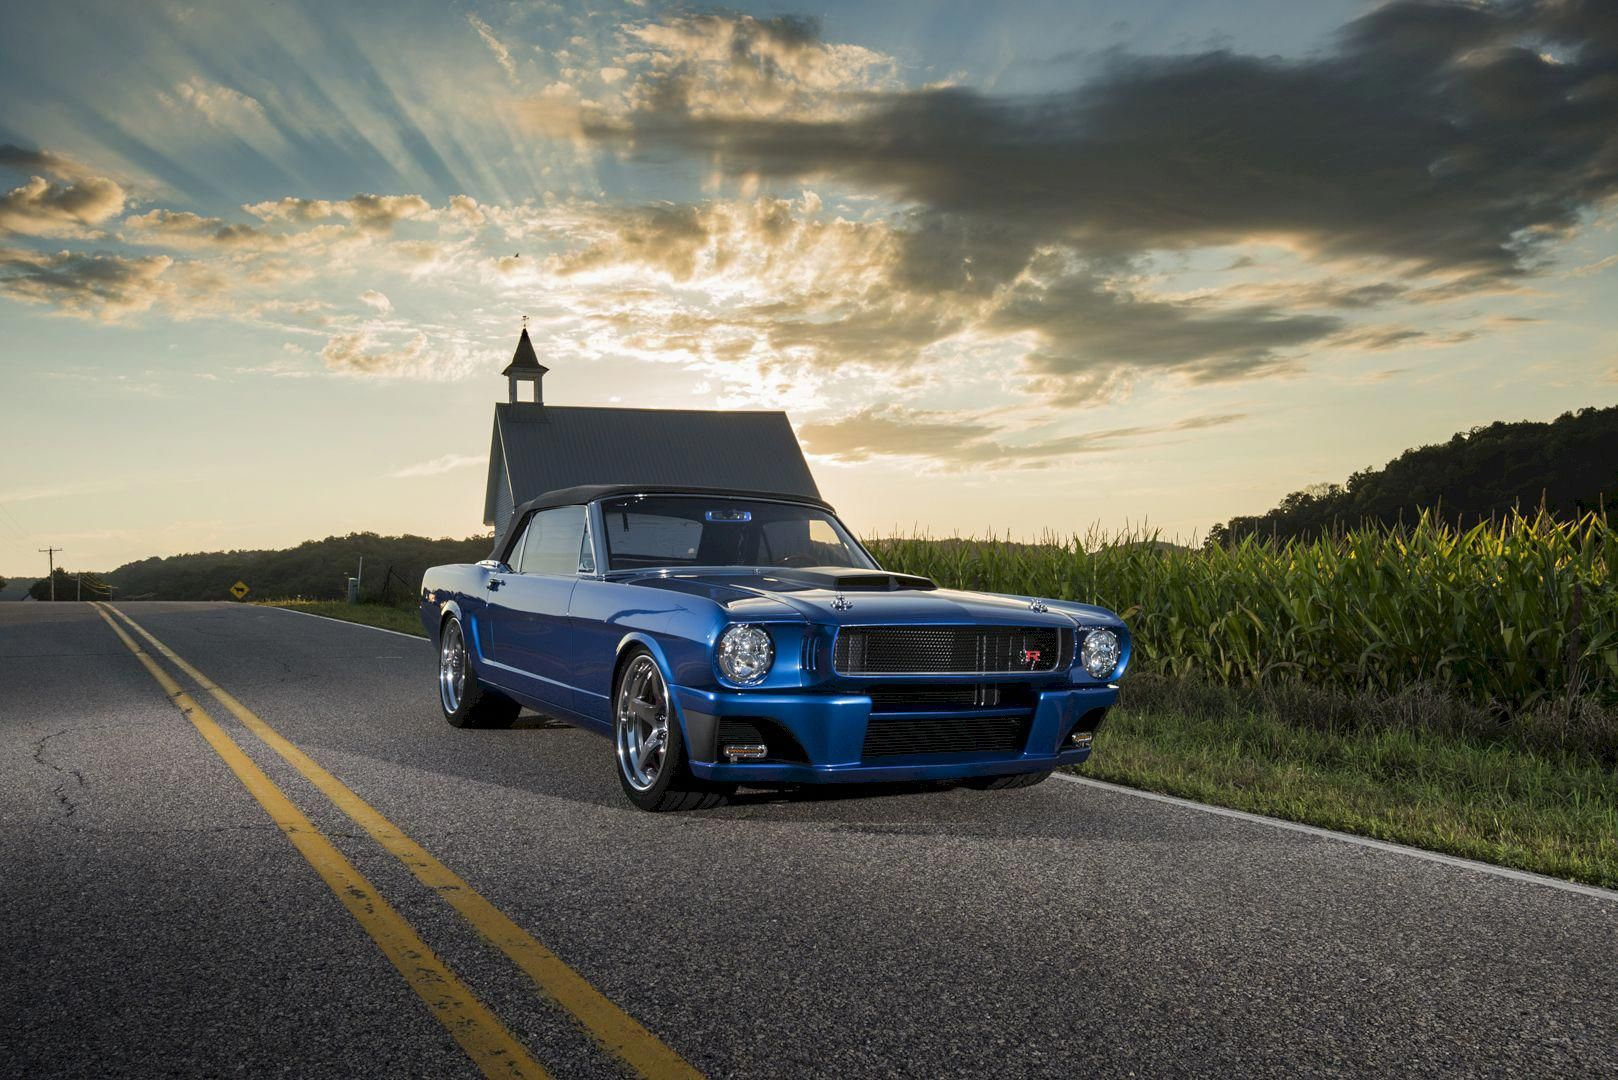 pin by moore on mustangs mustang ford mustang convertible 1965 rh pinterest com